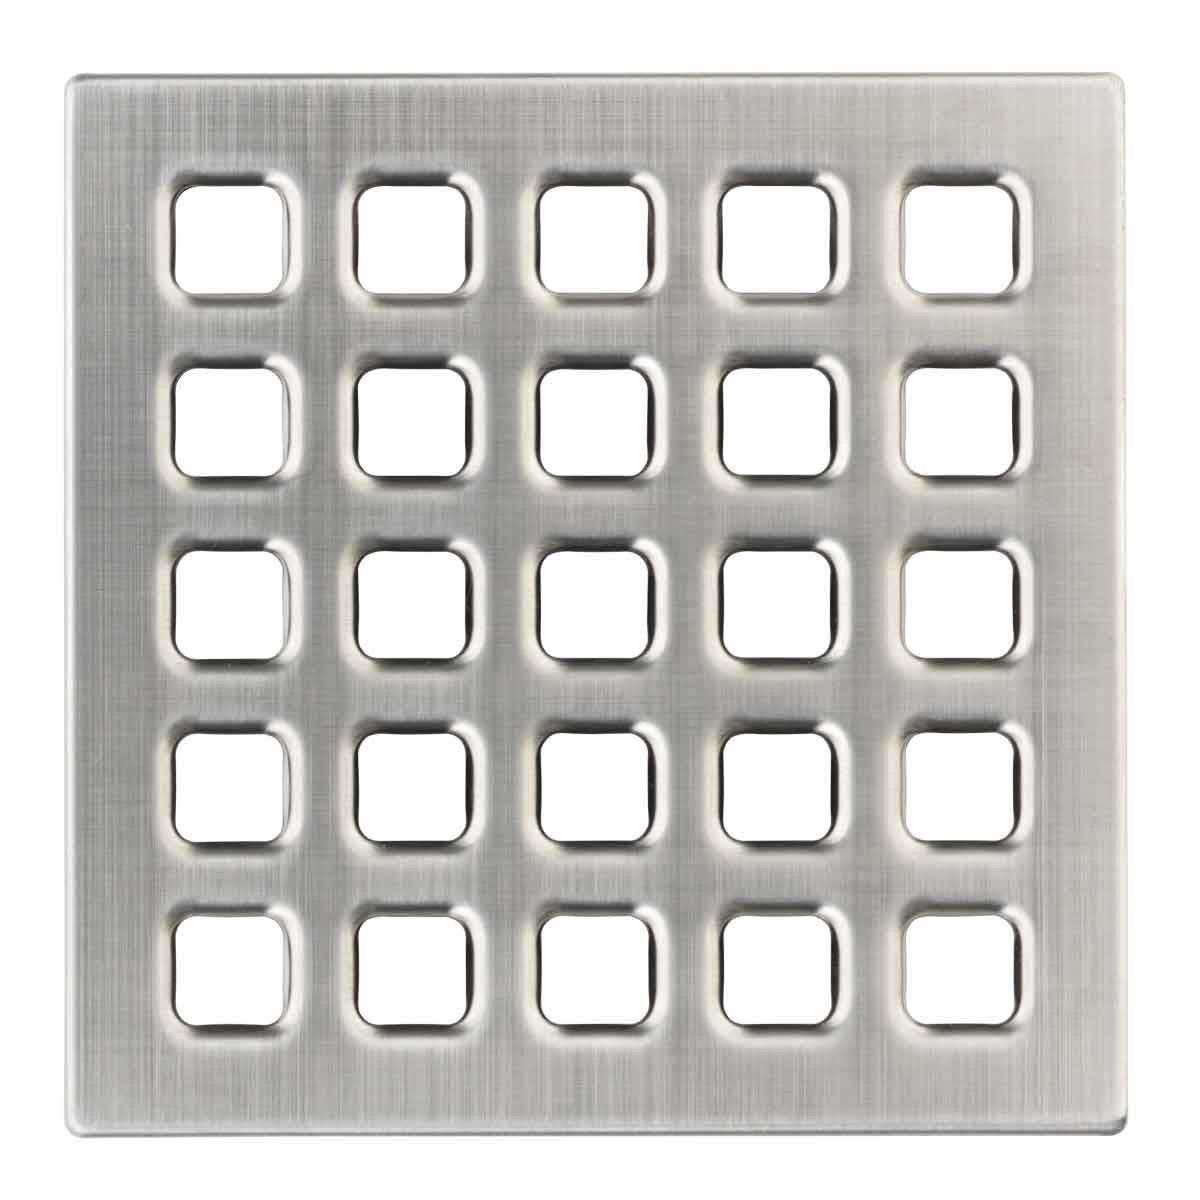 Pewter Durock Pro Series 4 inch Grate 170162